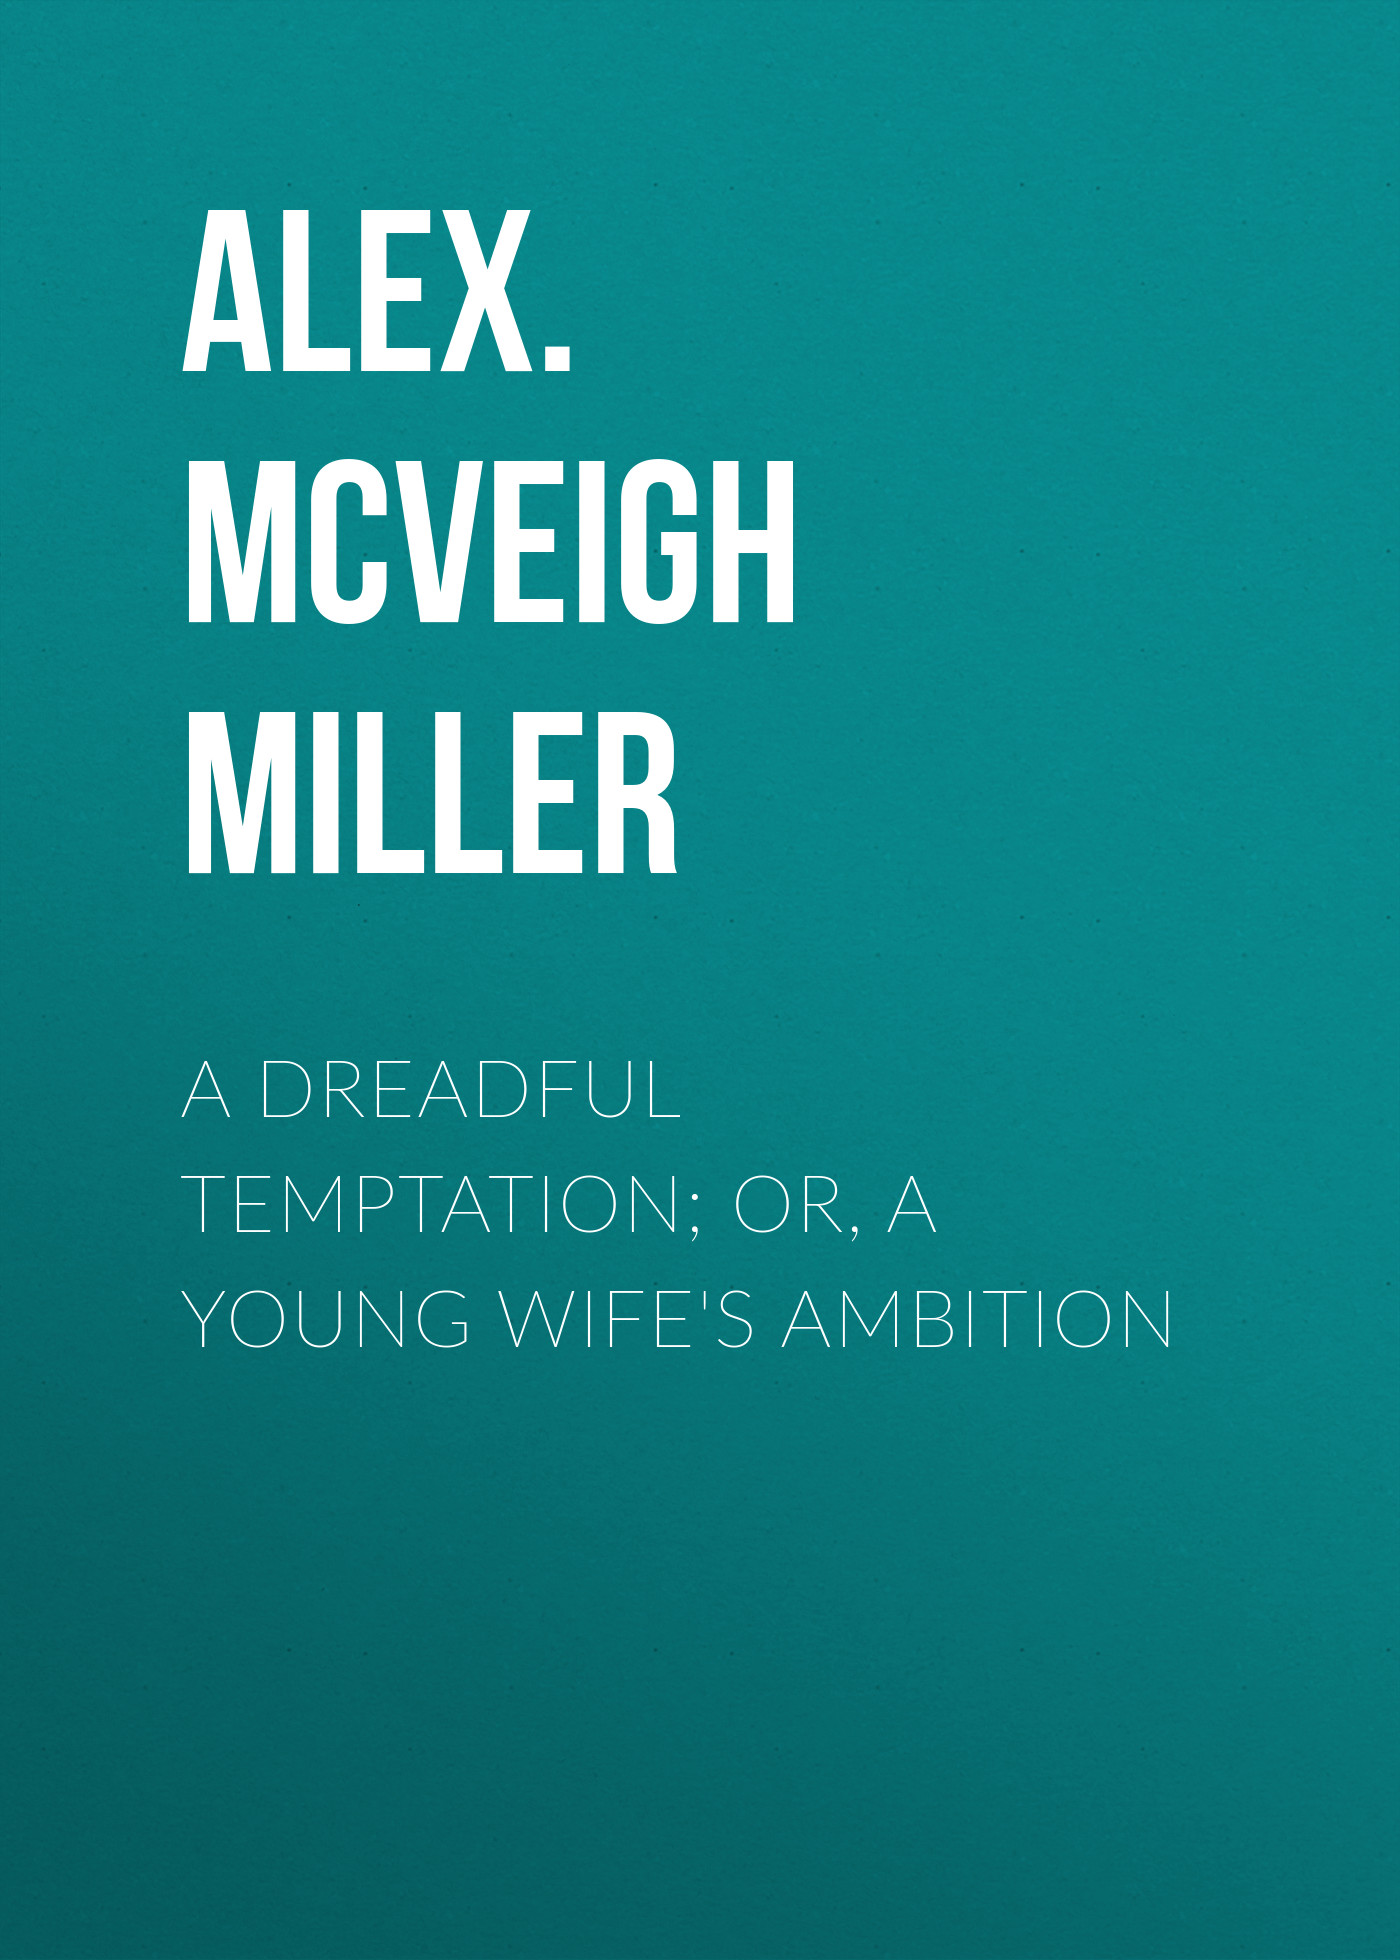 Alex. McVeigh Miller A Dreadful Temptation; or, A Young Wife's Ambition